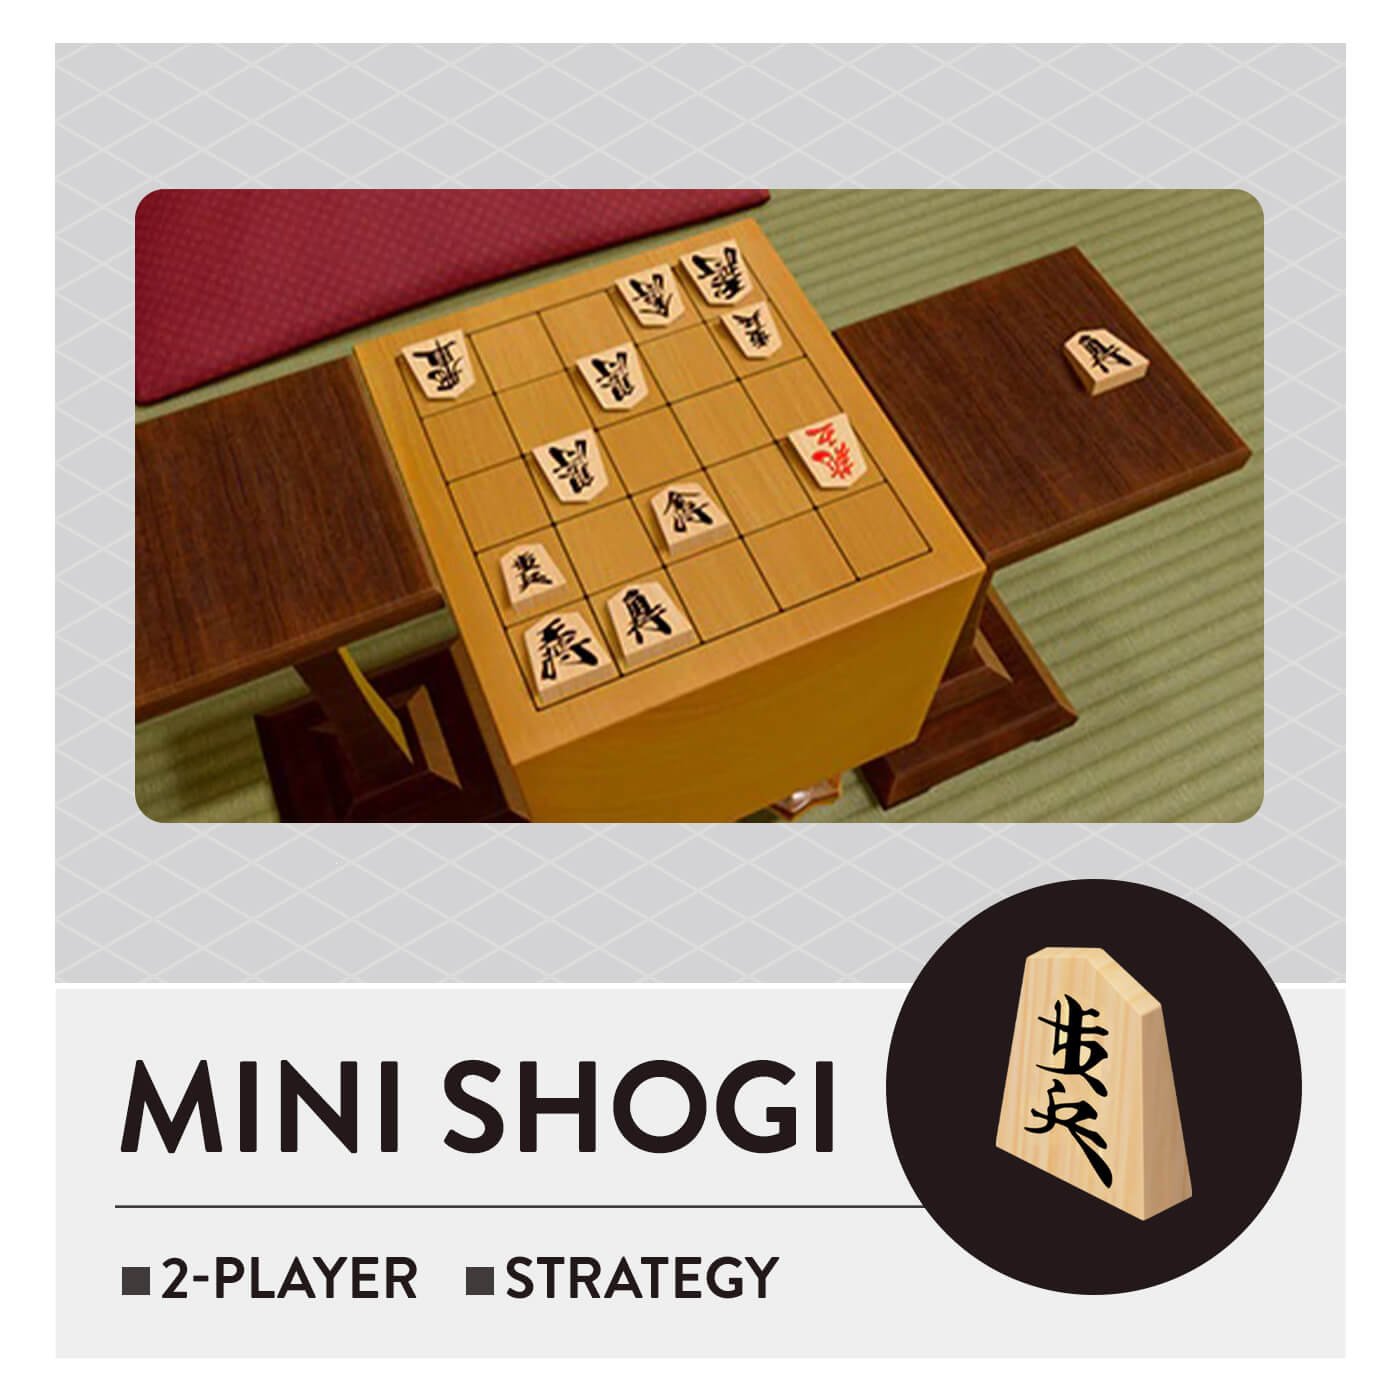 51 Worldwide Games - Mini Shogi